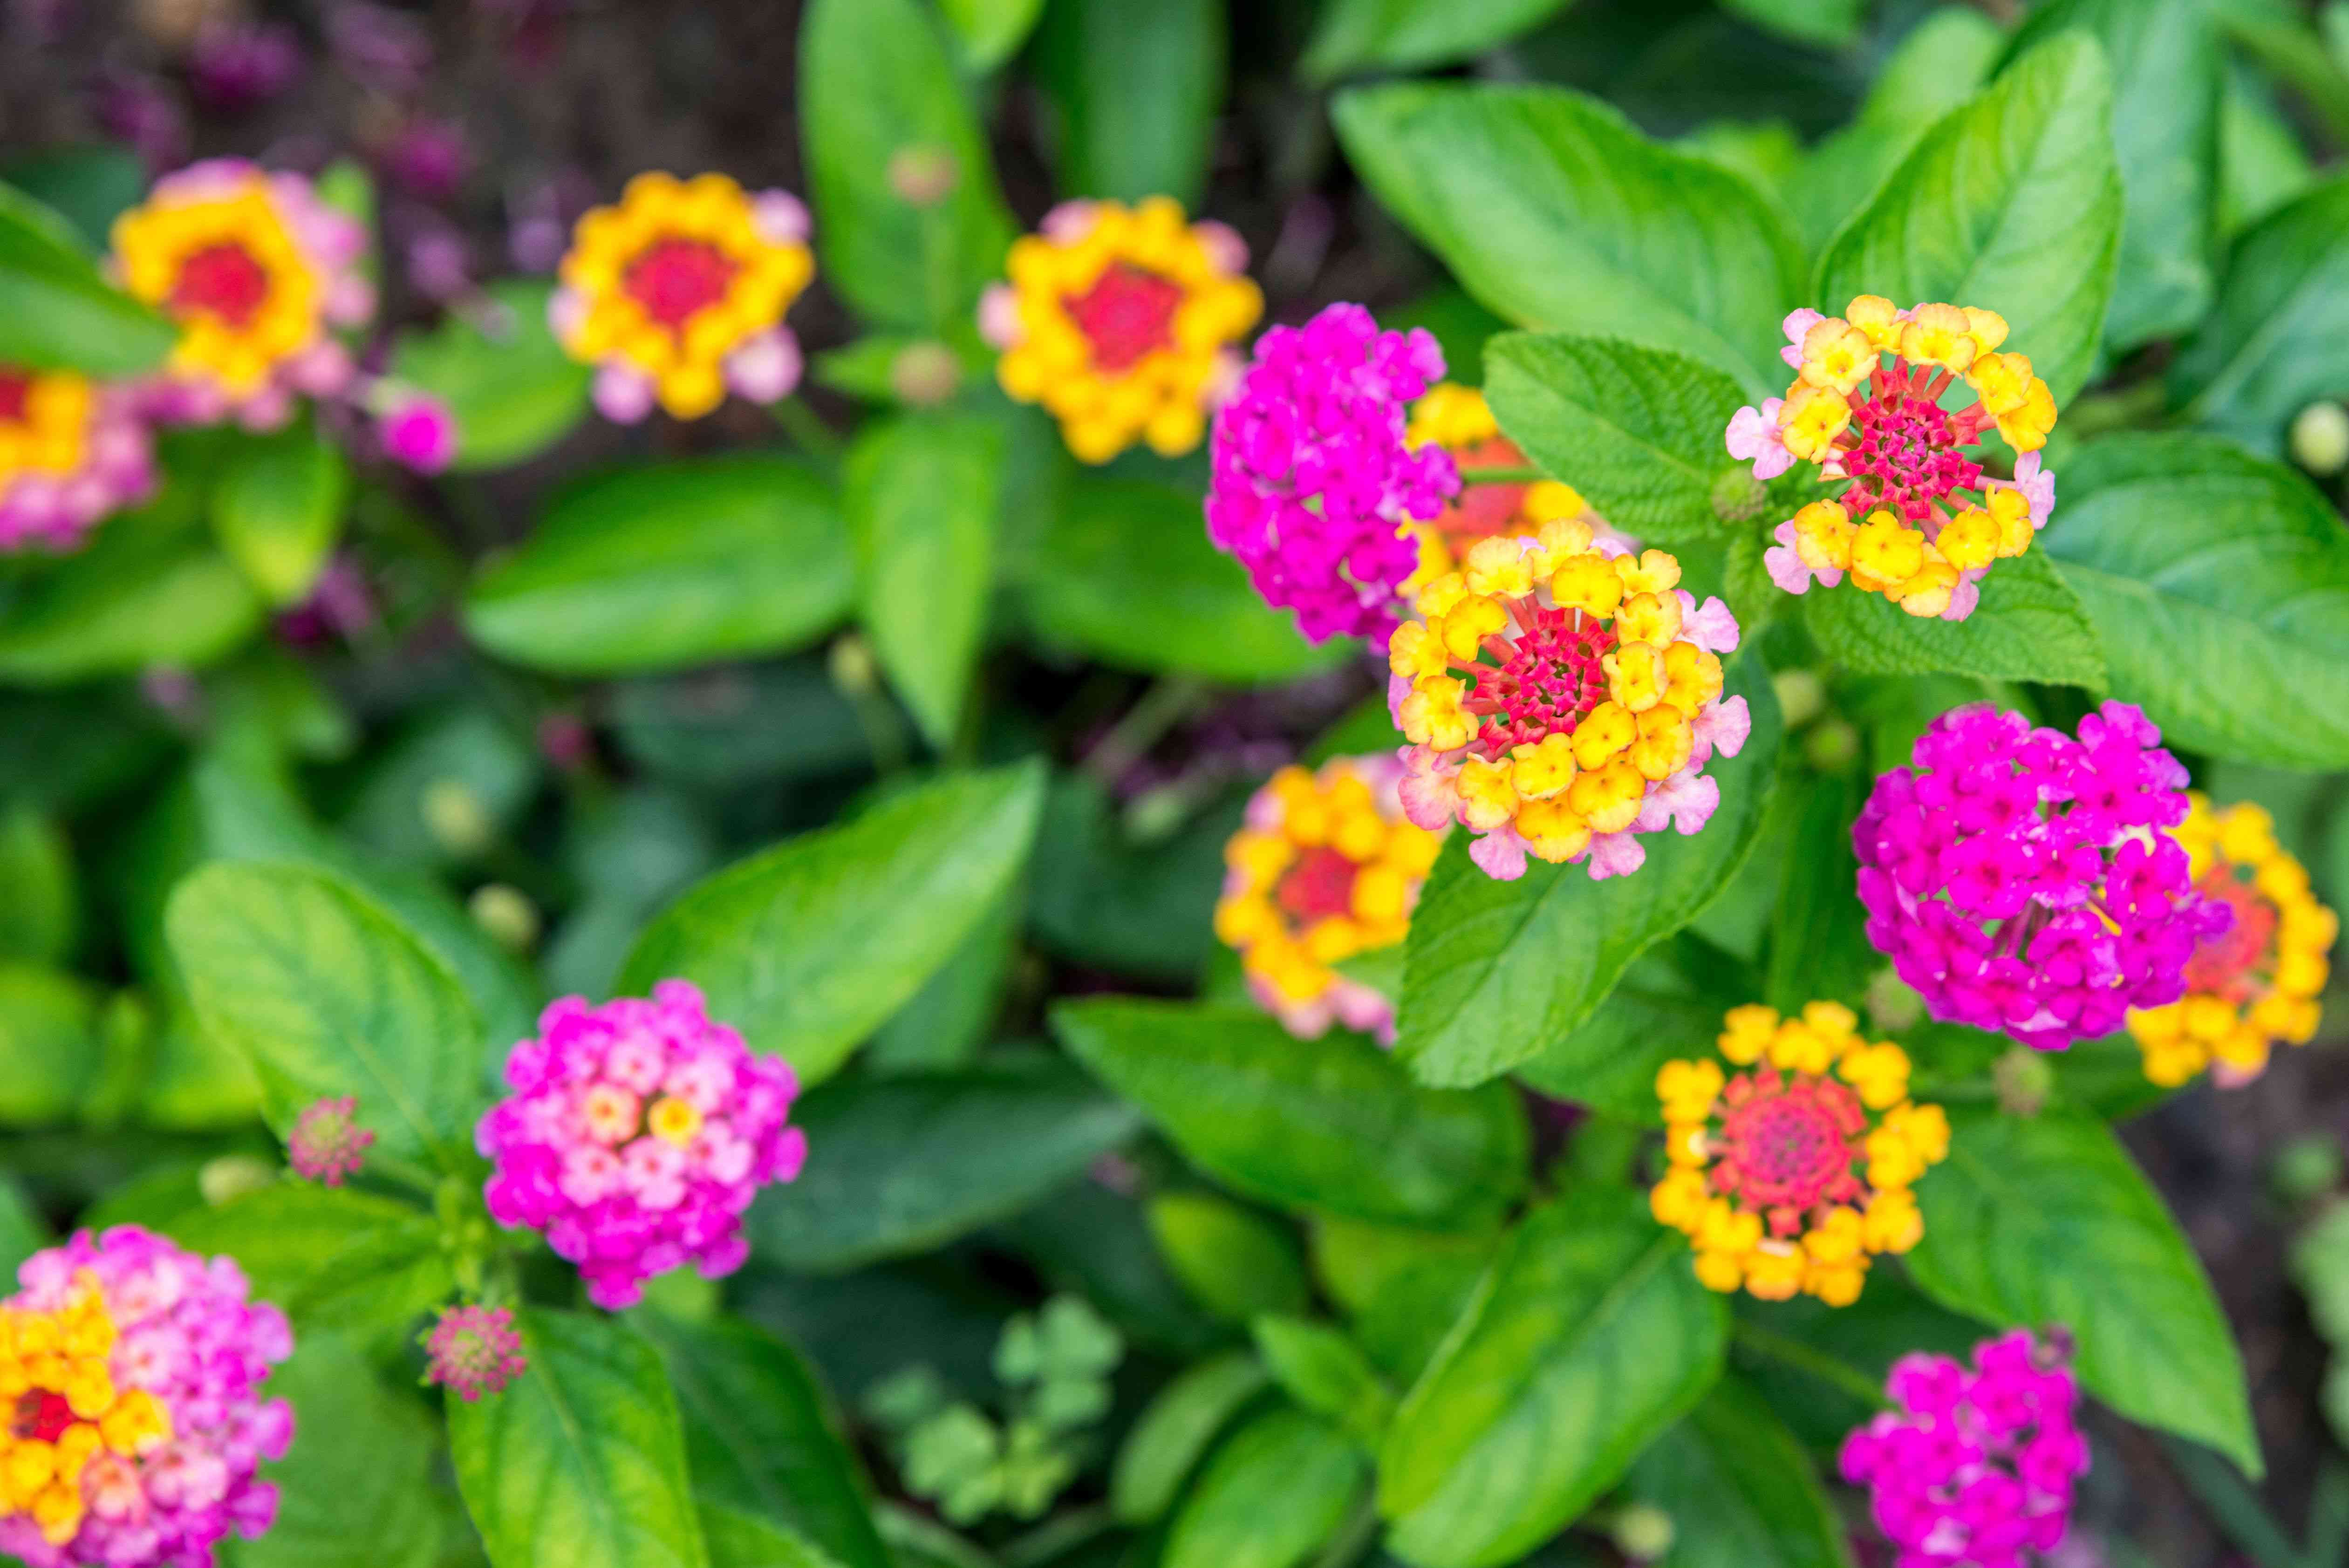 Lantana flowers with small bright pink, yellow and red petals clustered in garden closeup